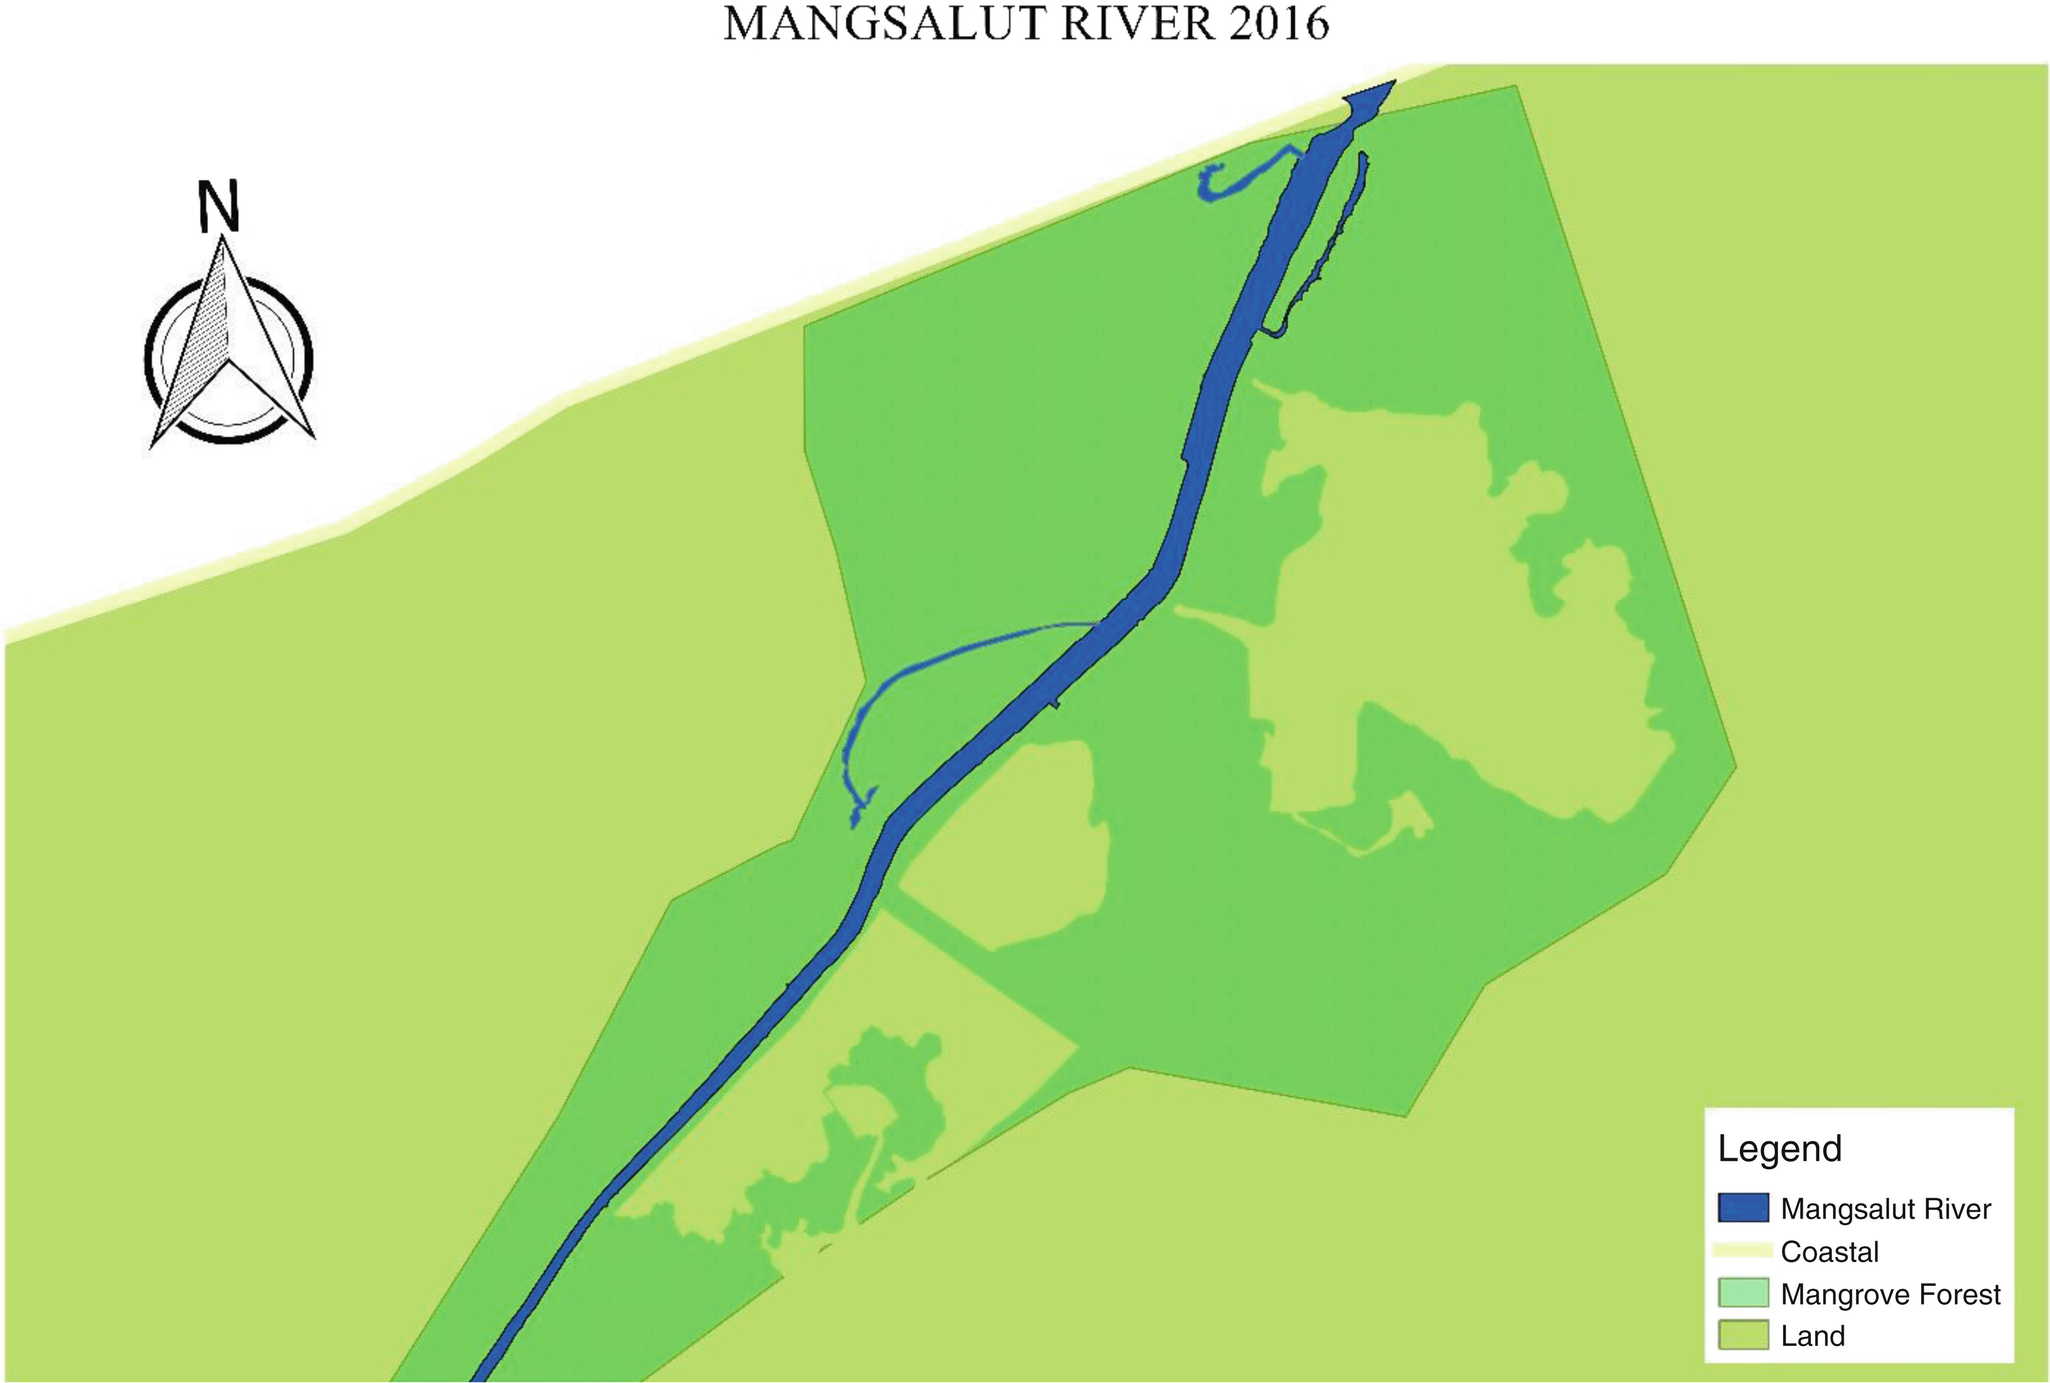 Assessment and Management Strategies of Mangrove Forests